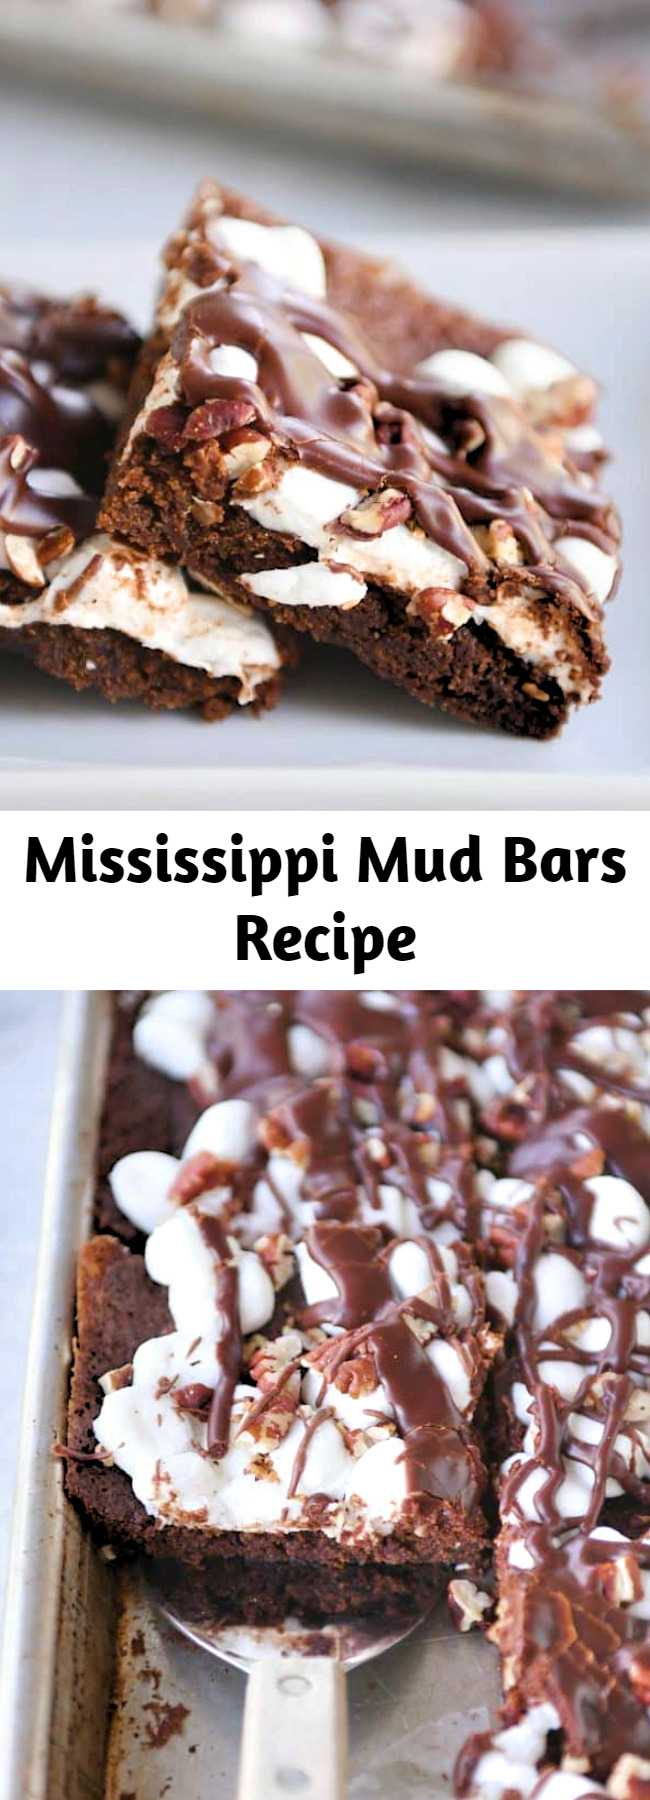 Mississippi Mud Bars Recipe - The brownie + marshmallows + toasted pecans + fudge sauce combo has never been tastier (or easier!). These Mississippi Mud Bars are insanely delicious and so simple to make!